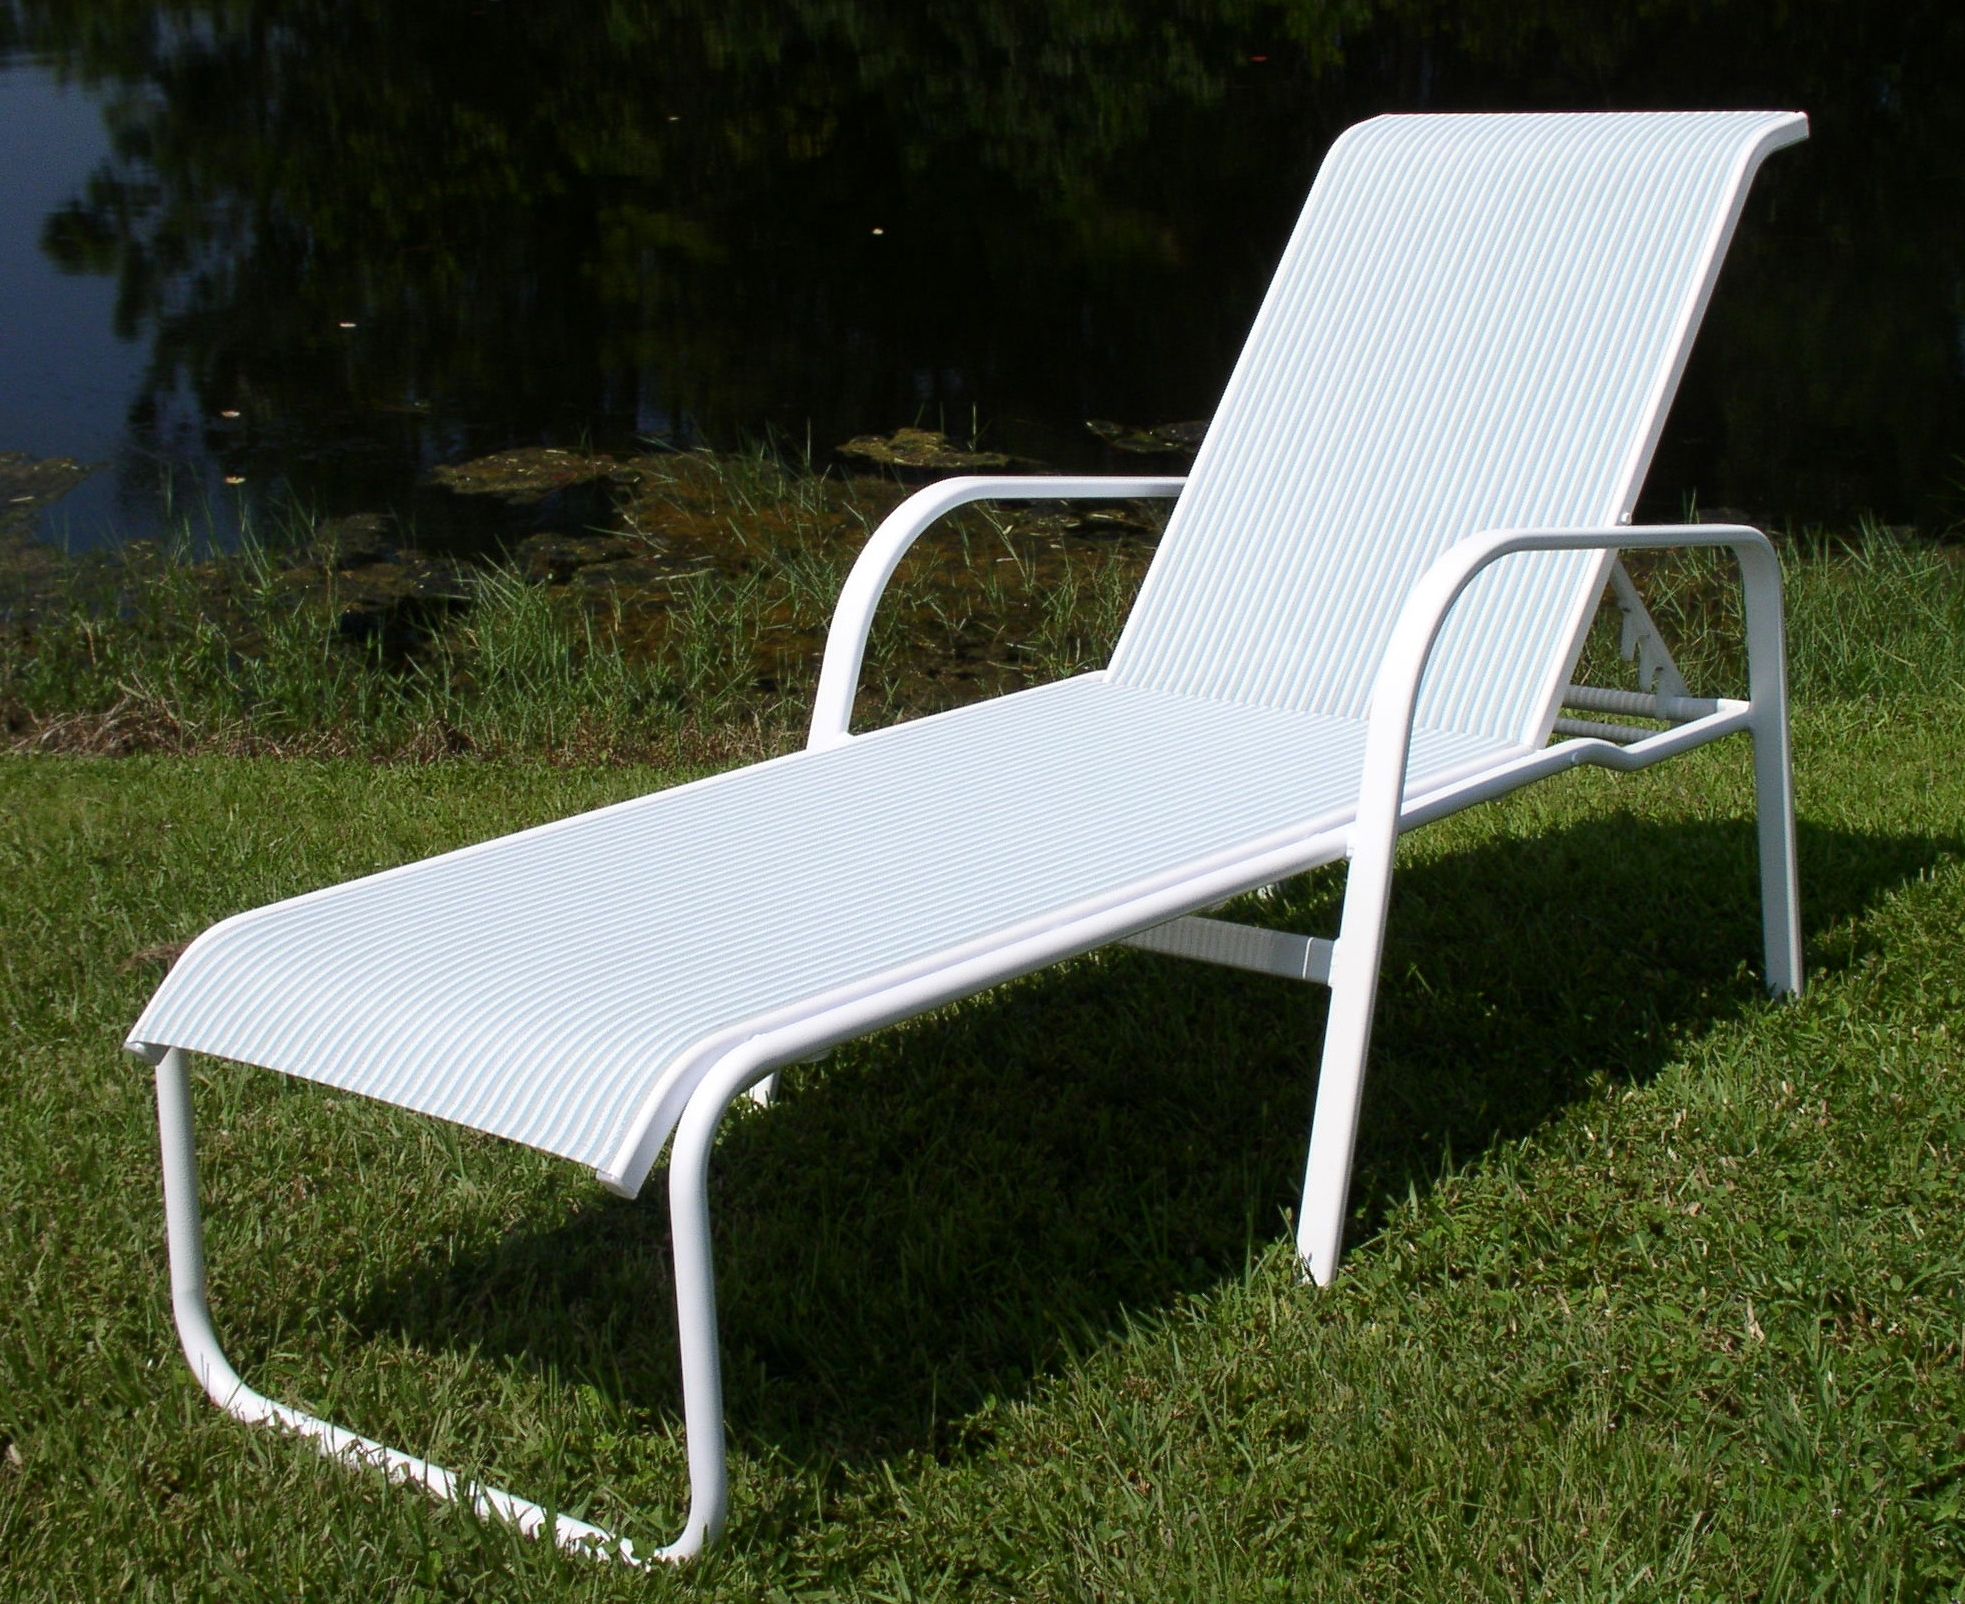 Lawn Chaises With Regard To Most Current Lawn Furniture Lounge Chairs • Lounge Chairs Ideas (View 6 of 15)